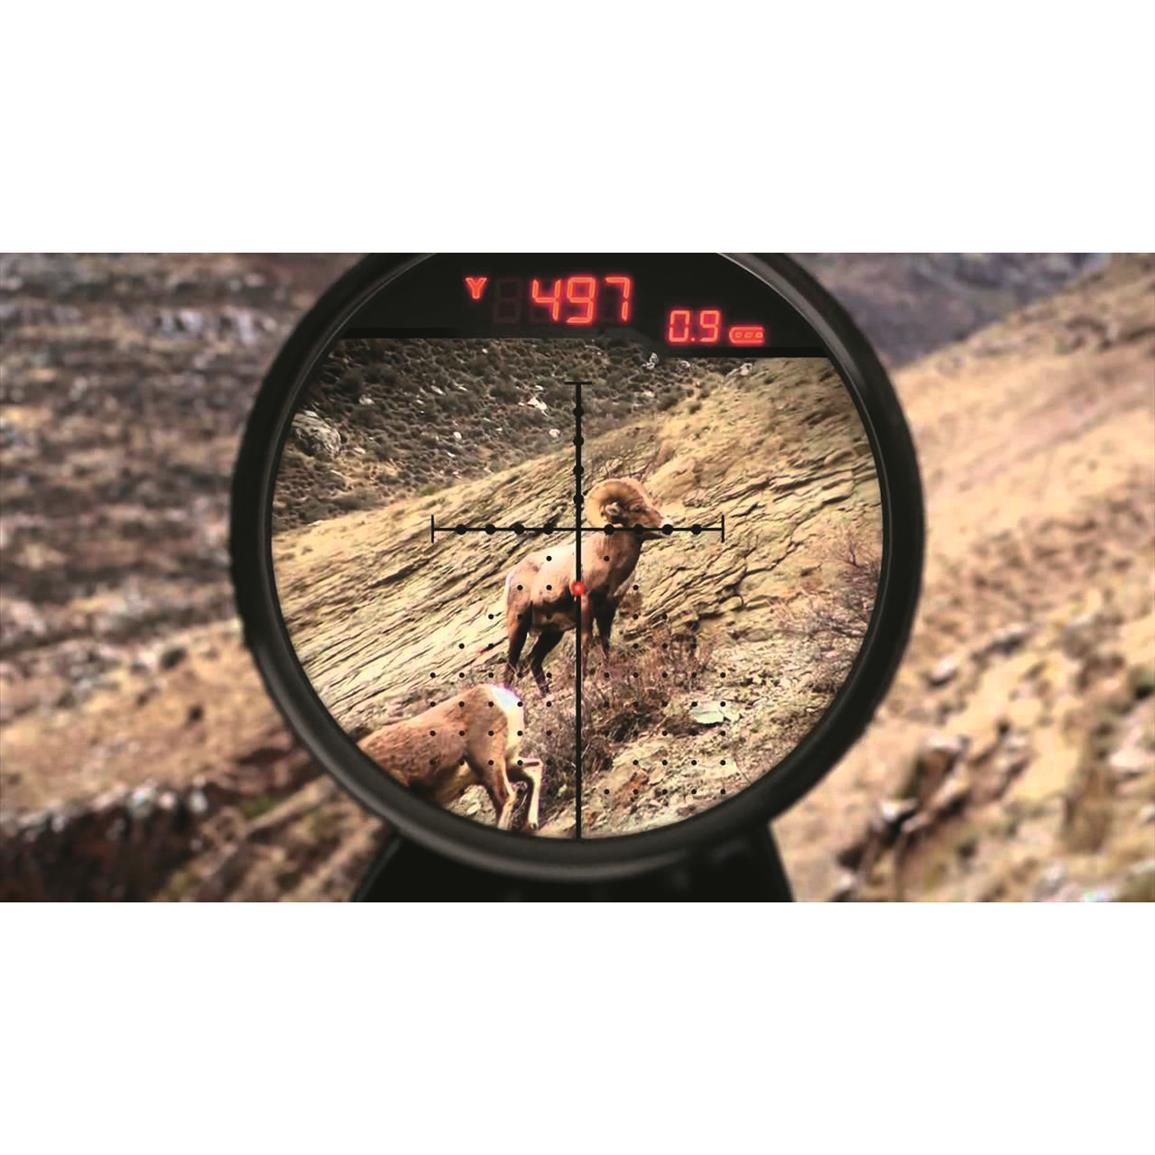 Sophisticated X96 Reticle